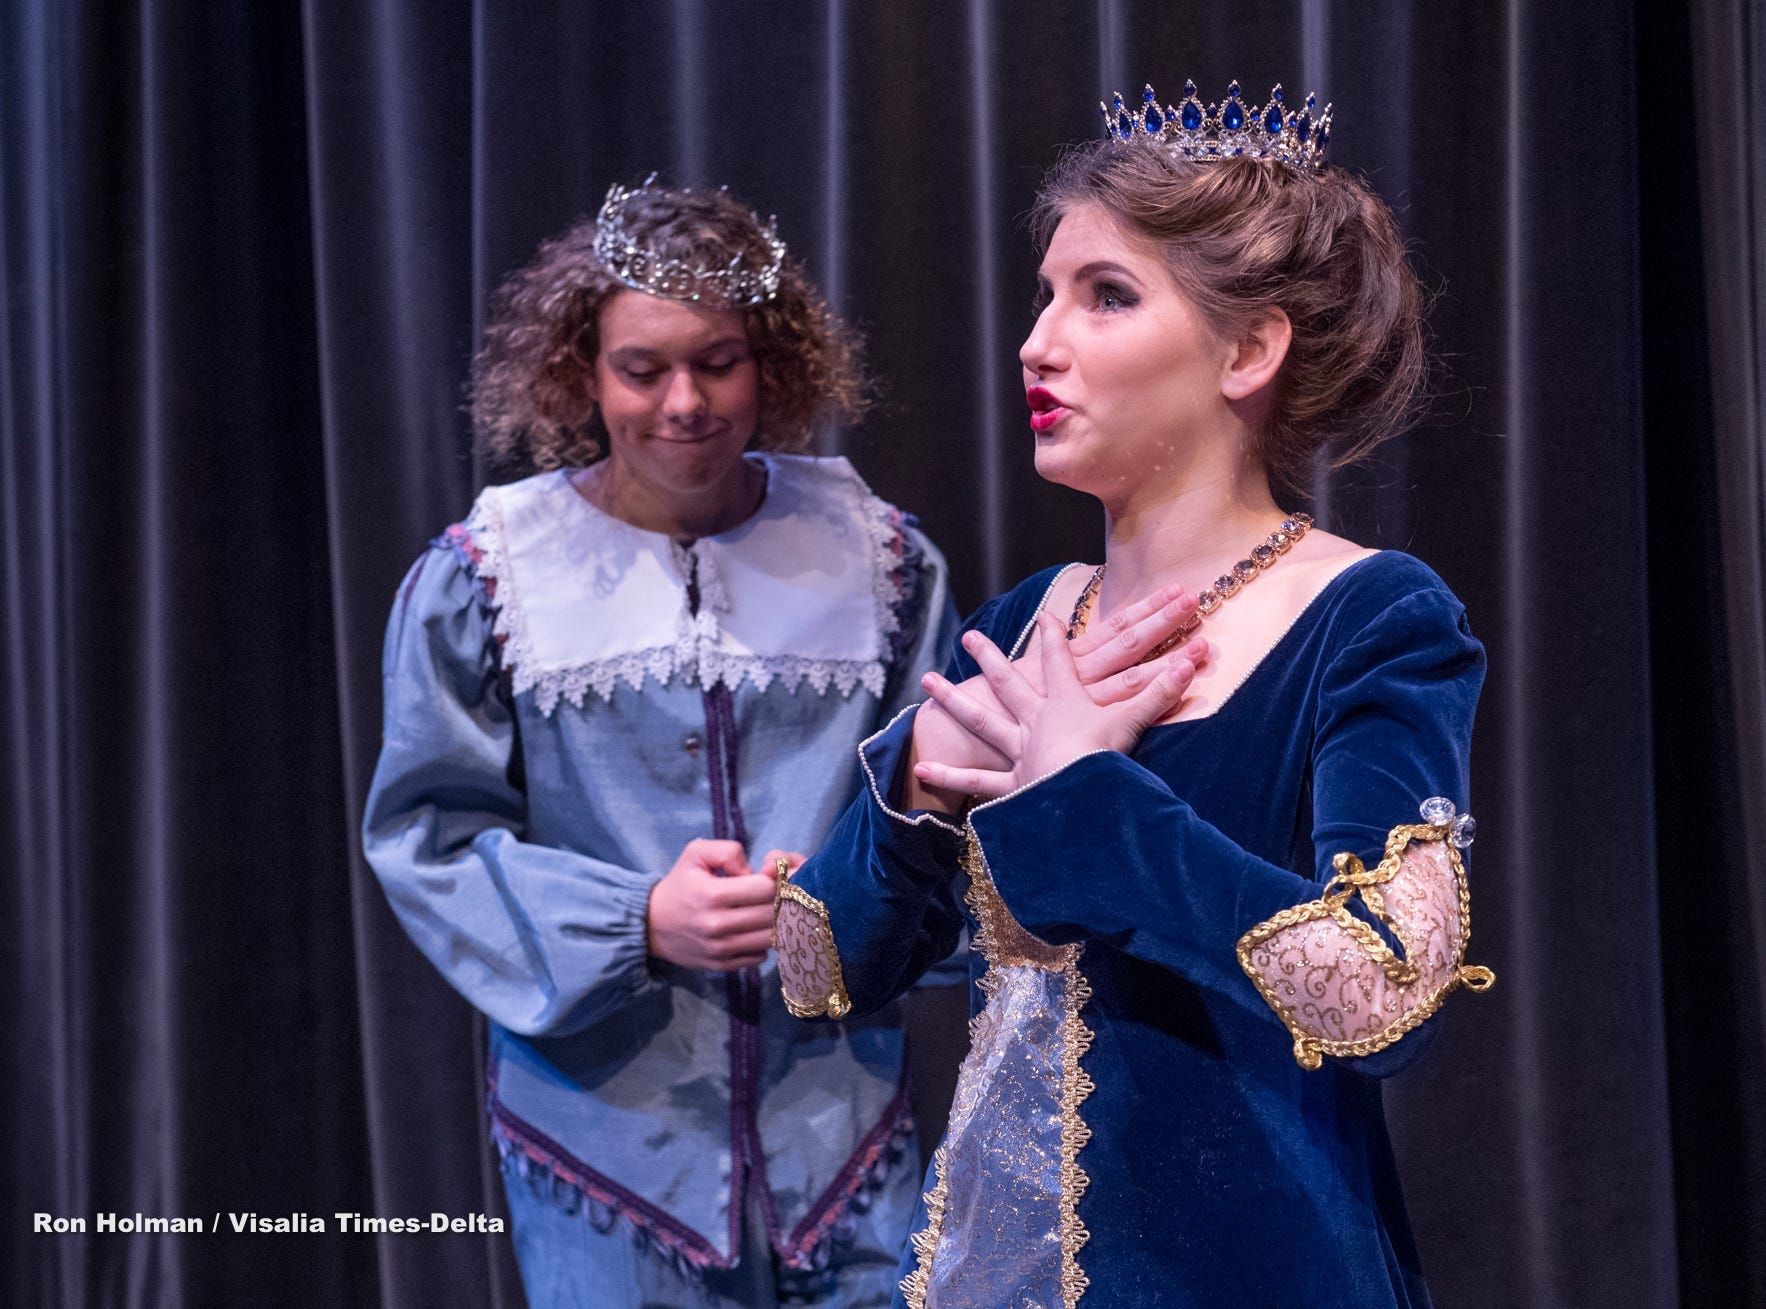 Students Jessica Peters, right, and Soloman Stahl rehearse for Redwood's production of Once Upon a Mattress in the L.J. Williams Theater on Wednesday, February 13, 2019.